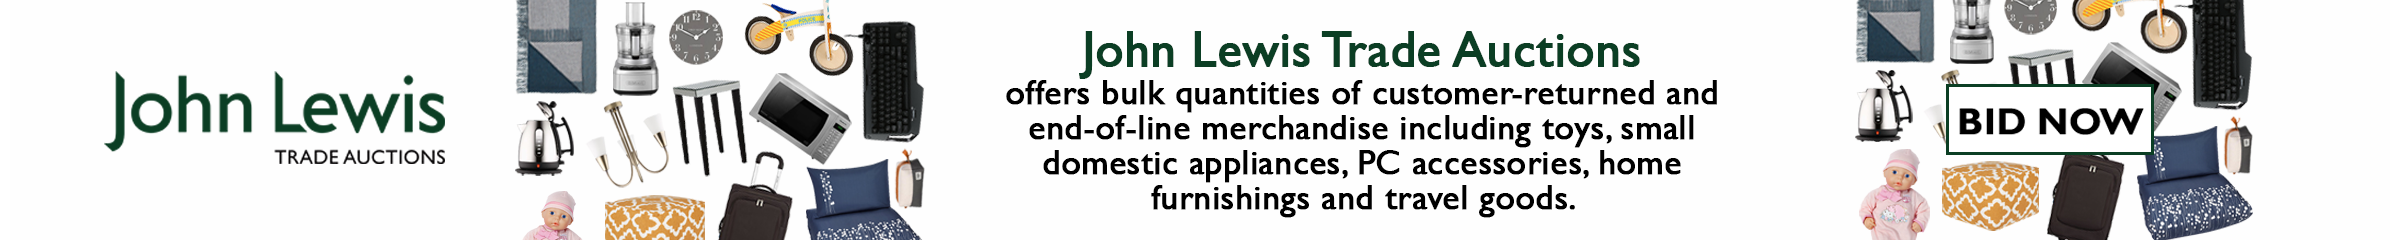 John Lewis Trade Auctions